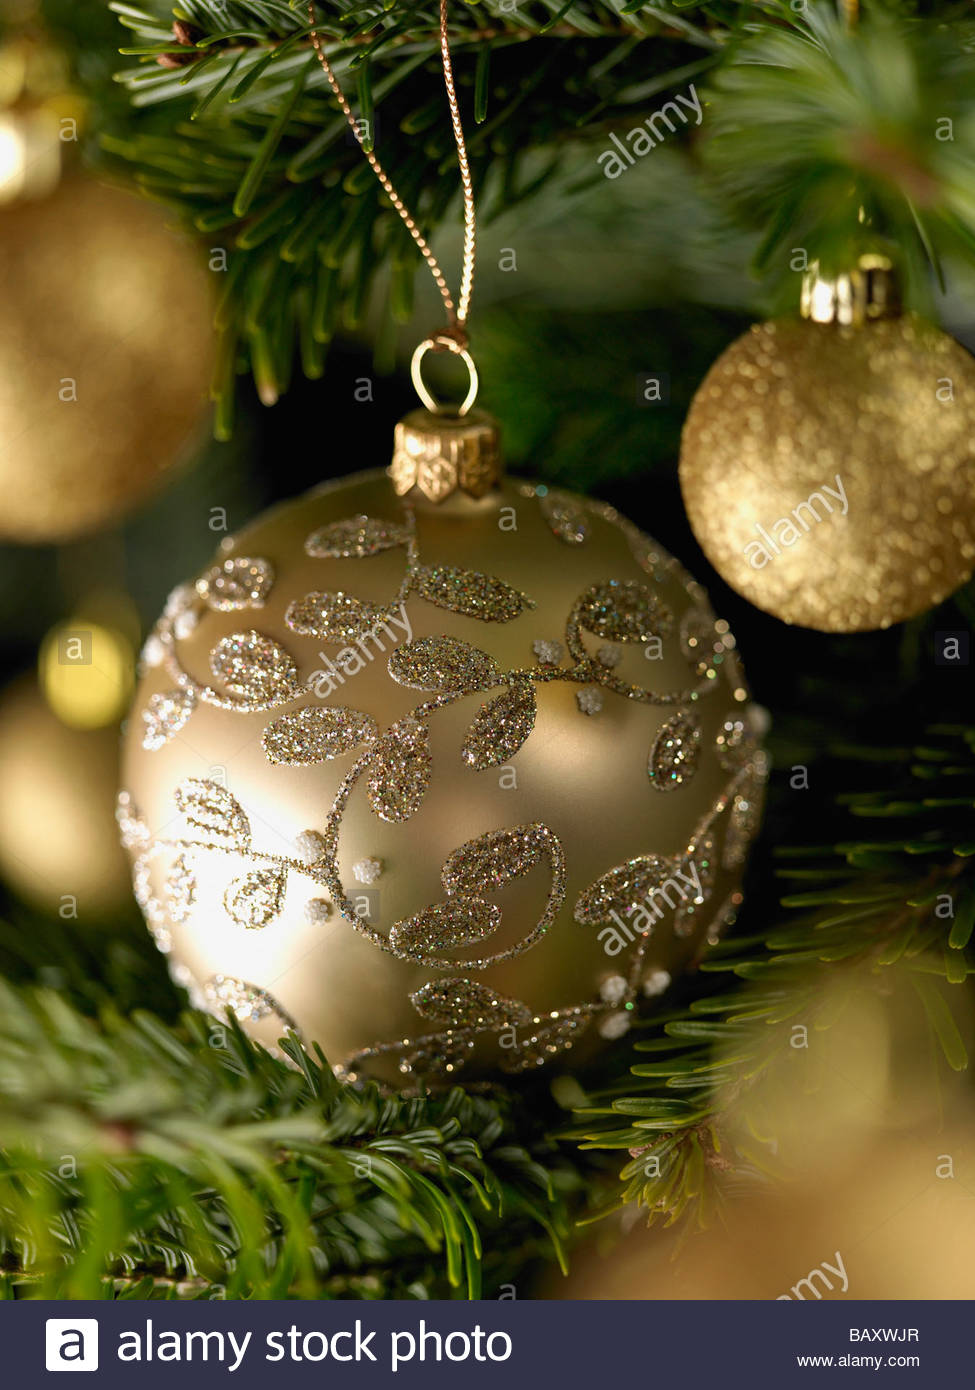 Close Up Of Gold Christmas Ornaments On Tree